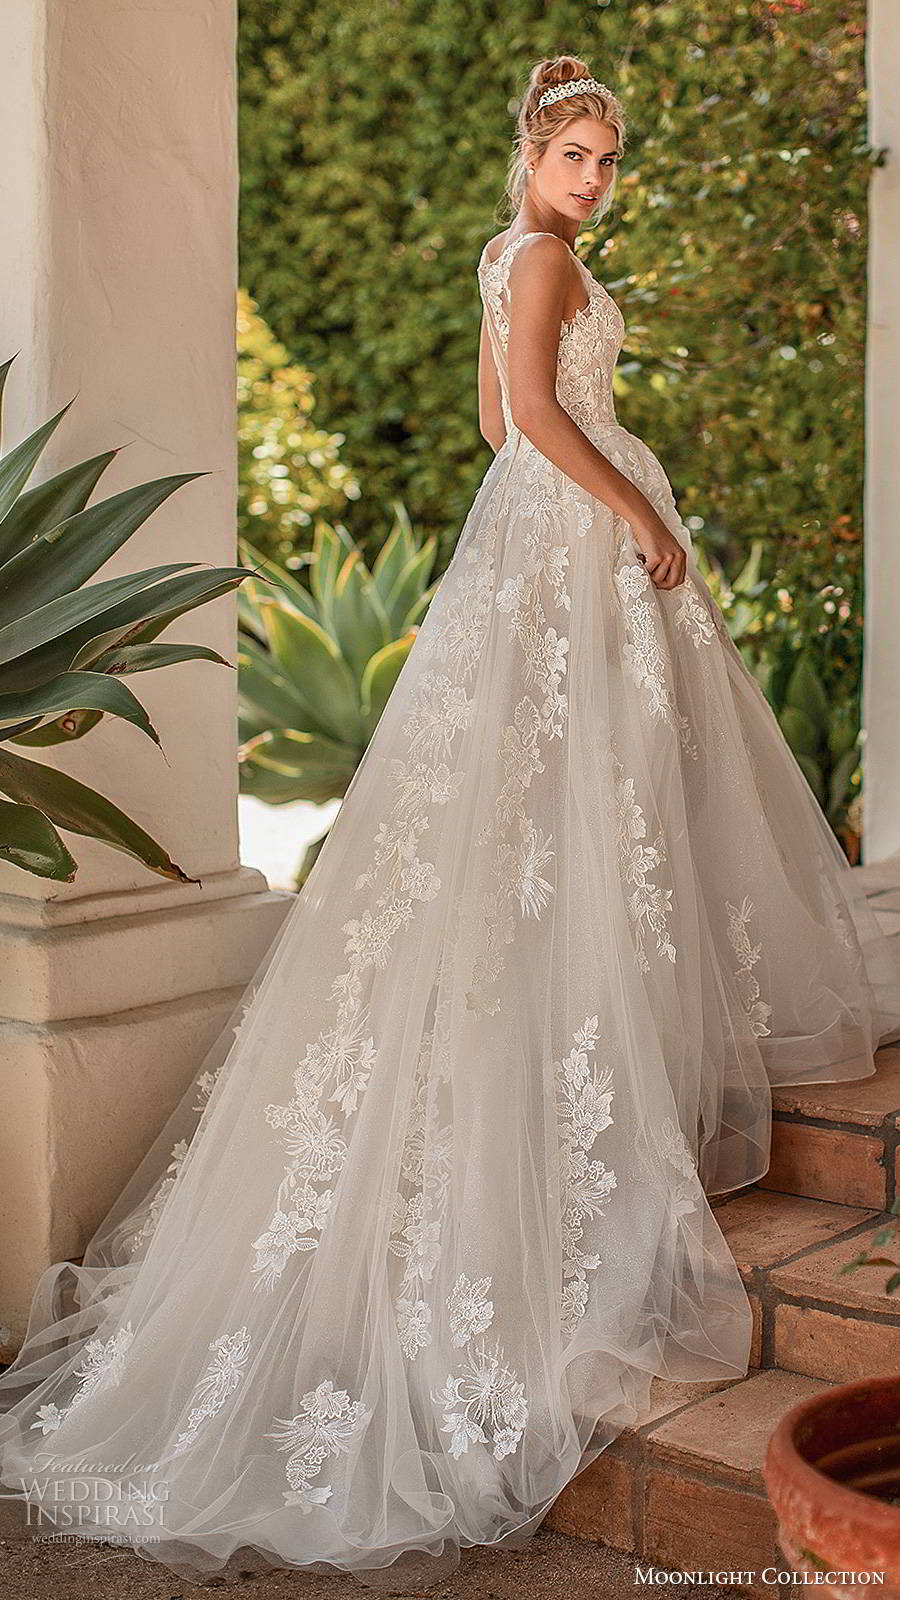 moonlight collection spring 2020 bridal sleeveless sheer straps v neckline fully embellished romantic a line ball gown wedding dress illusion back chapel train (10) sv